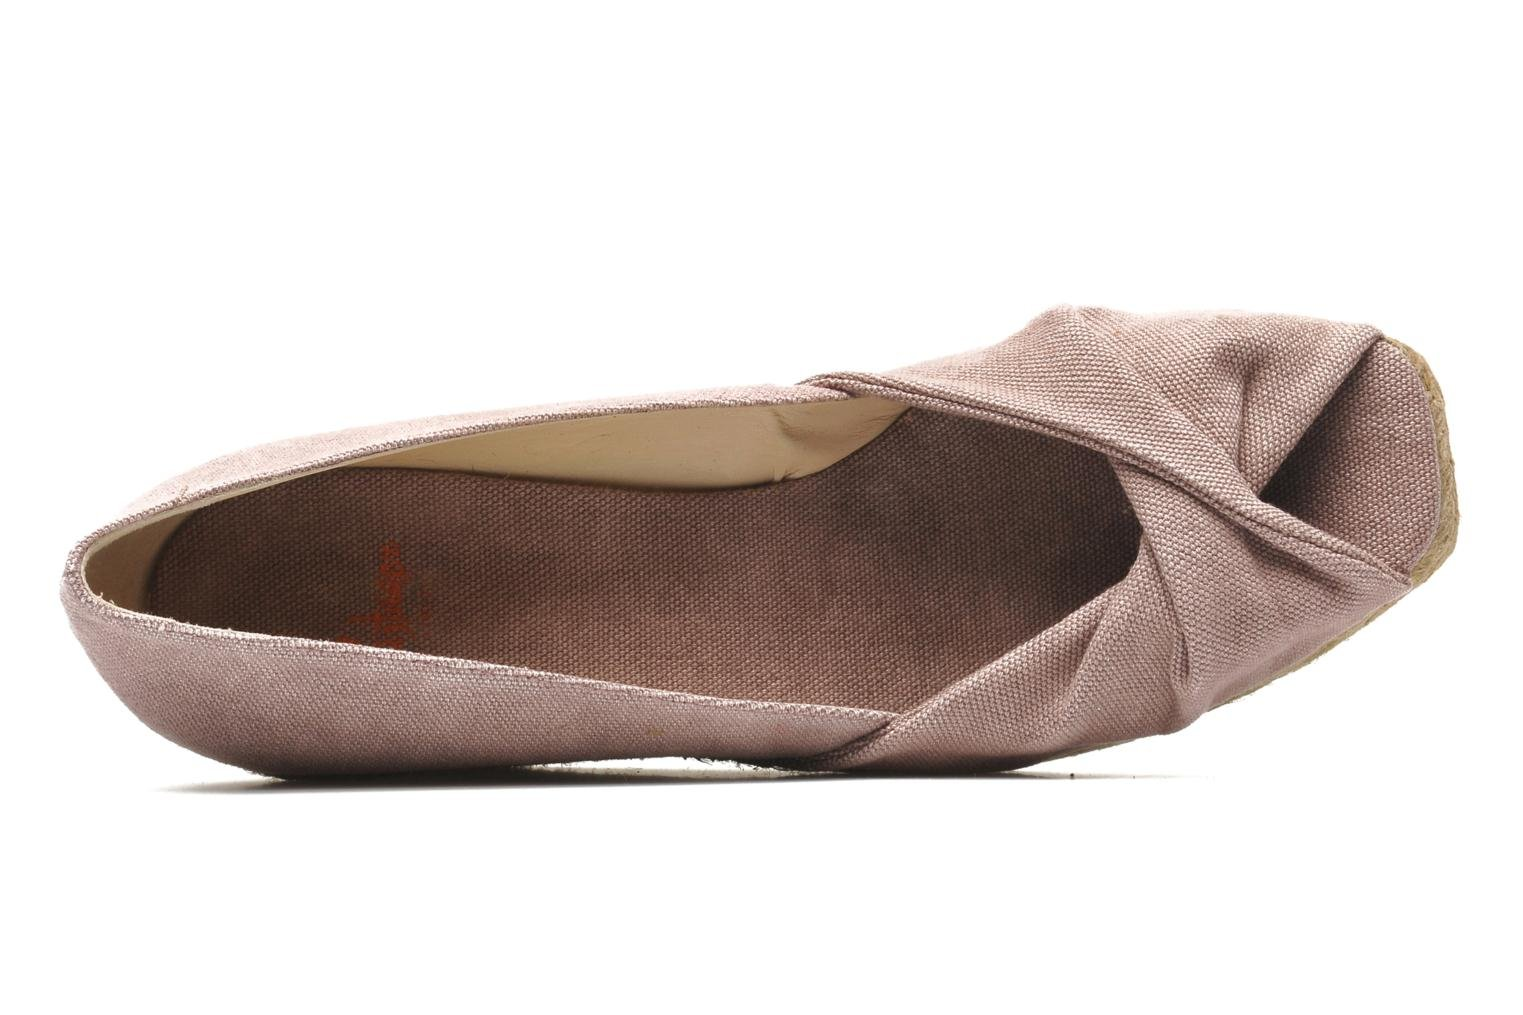 Tulsa8 washed canvas dusty pink